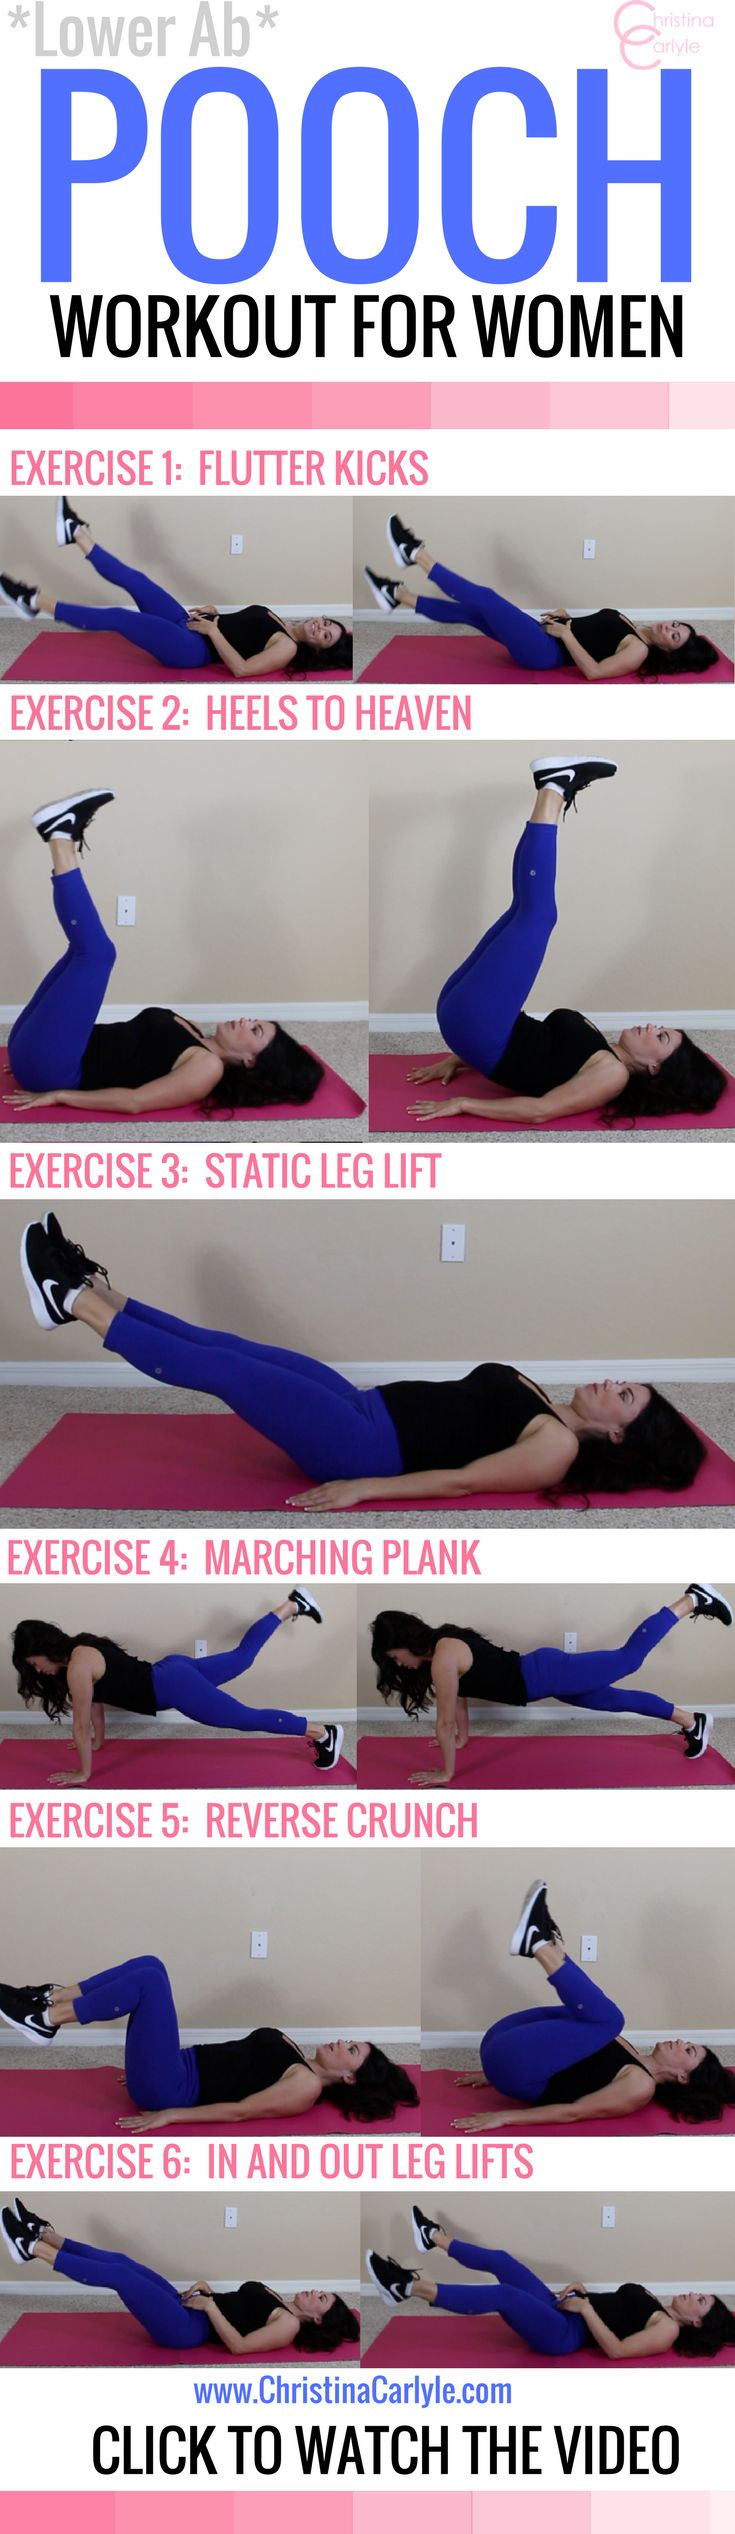 Lower ab pooch workout for women Want to flatter your lower ab pooch? The 6 low ab exercises in this pooch workout - will flatten pooch - in 30 minutes flat - and you can do it anywhere.